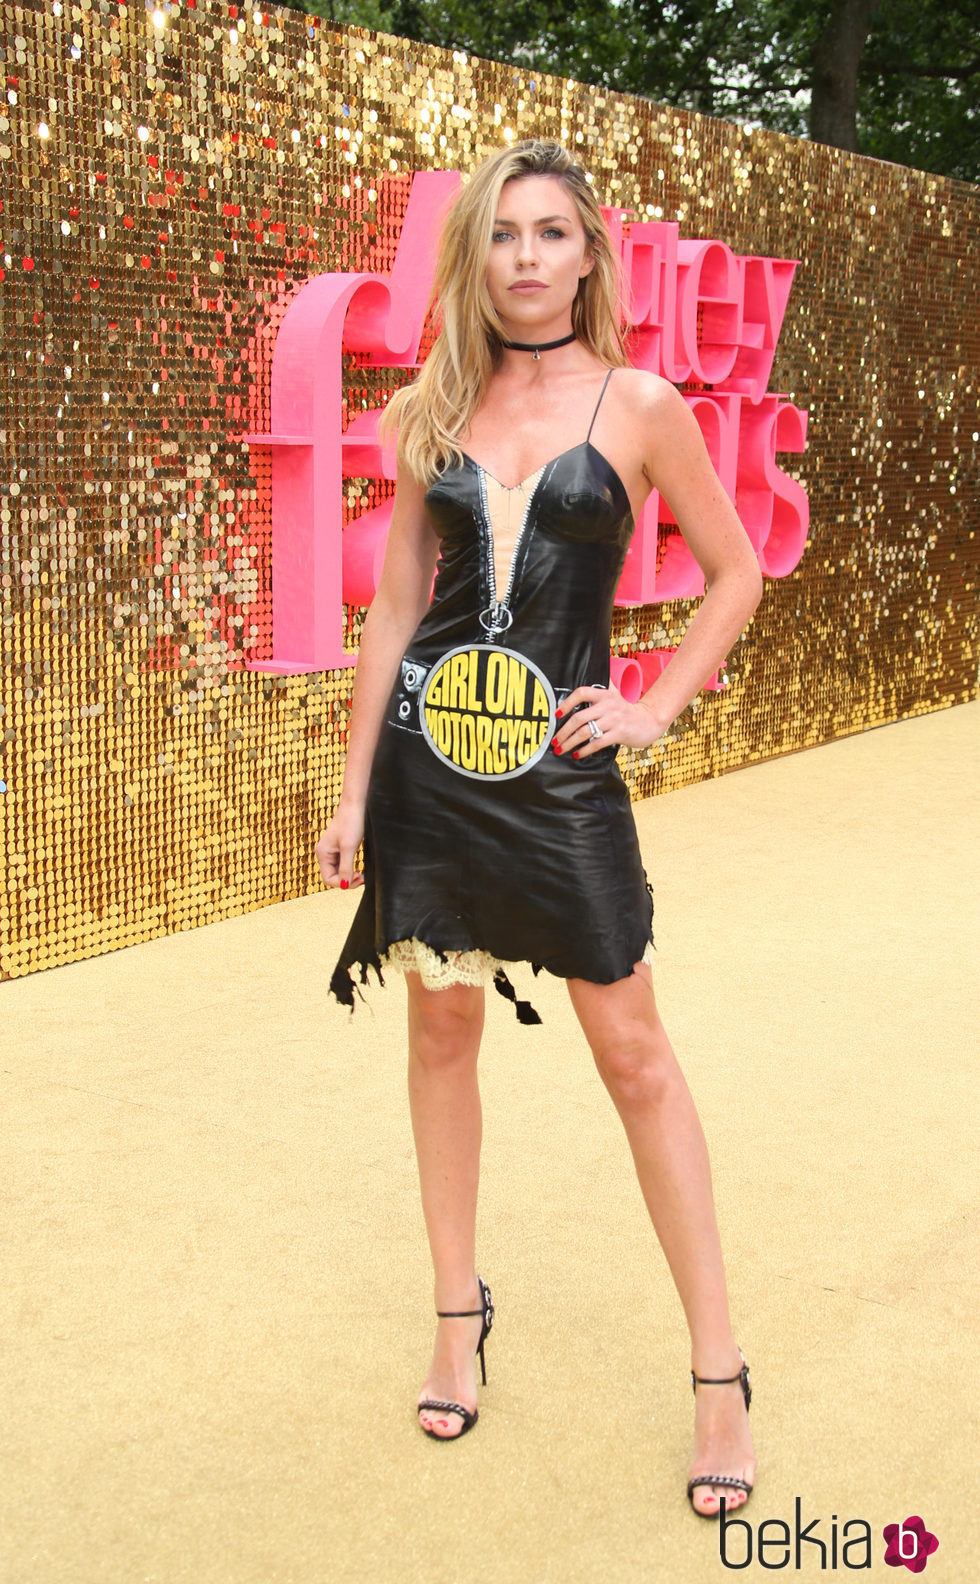 La modelo Abbey Clancy en la Premiere de 'Absolutely Fabulous'